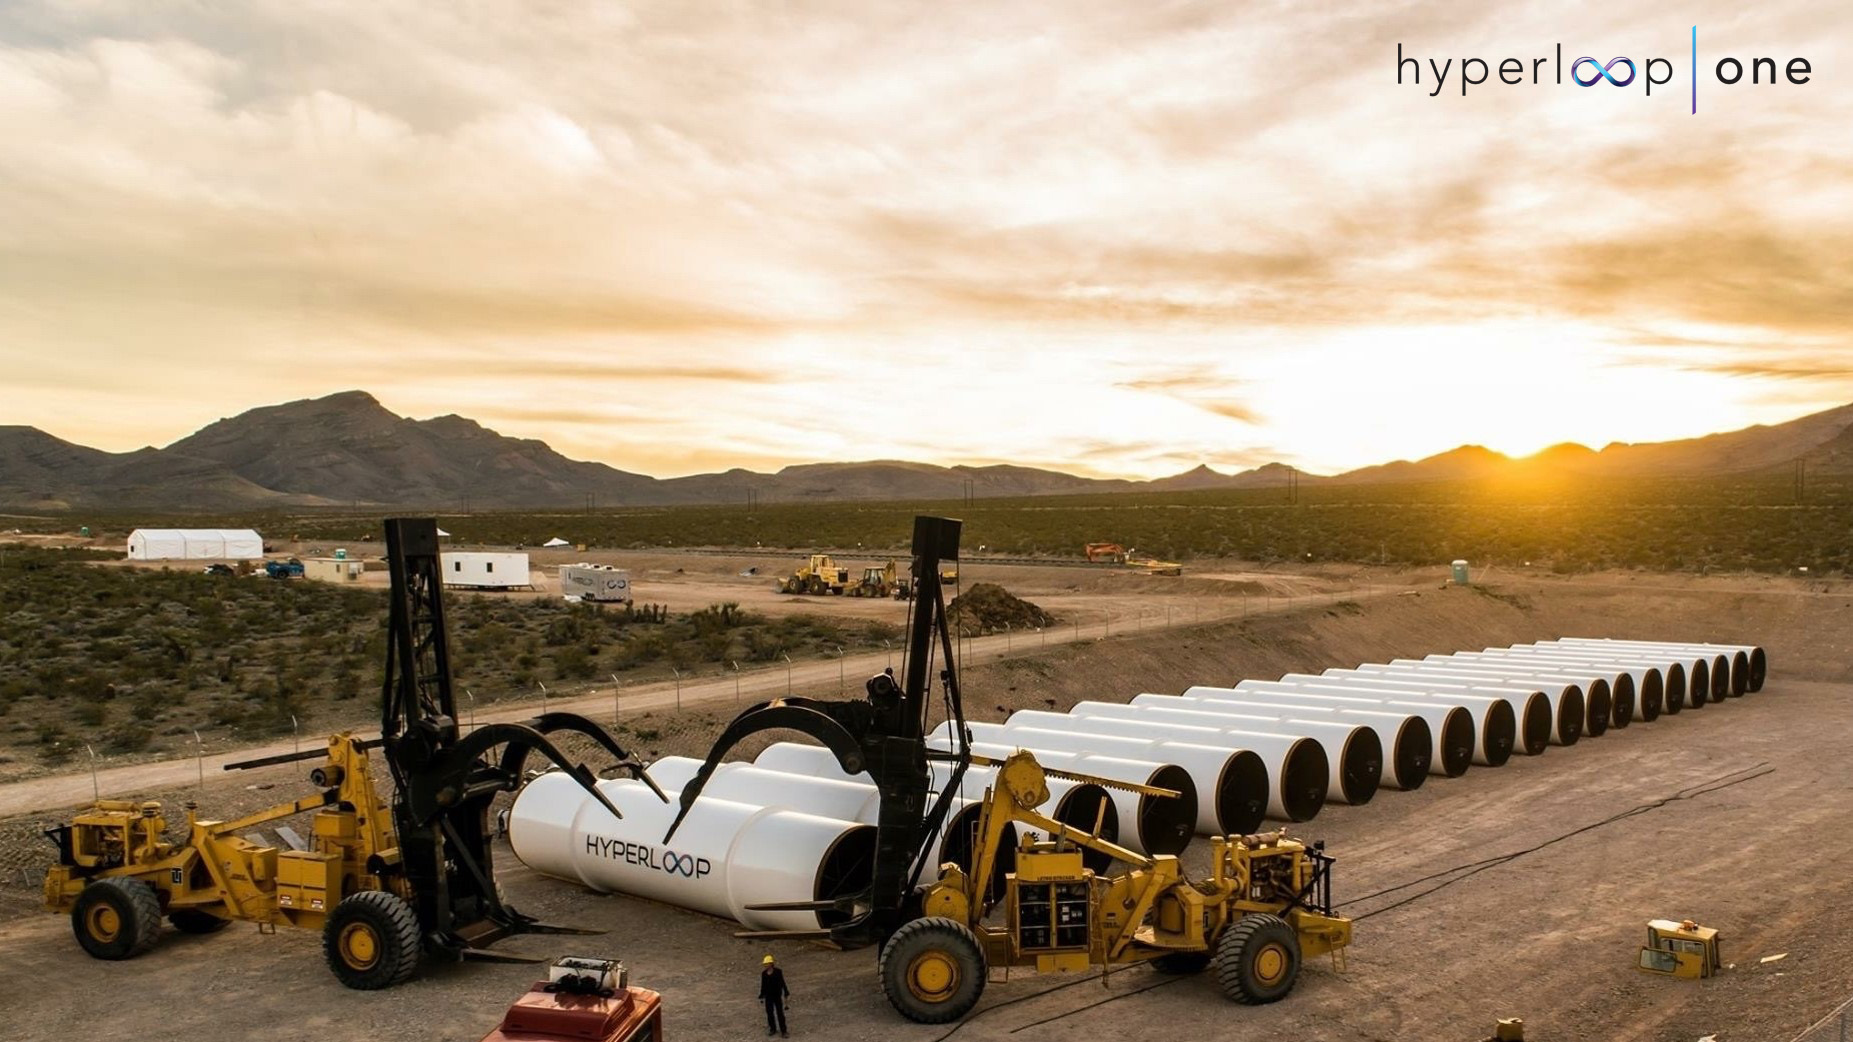 Hyperloop One: New name, same goal